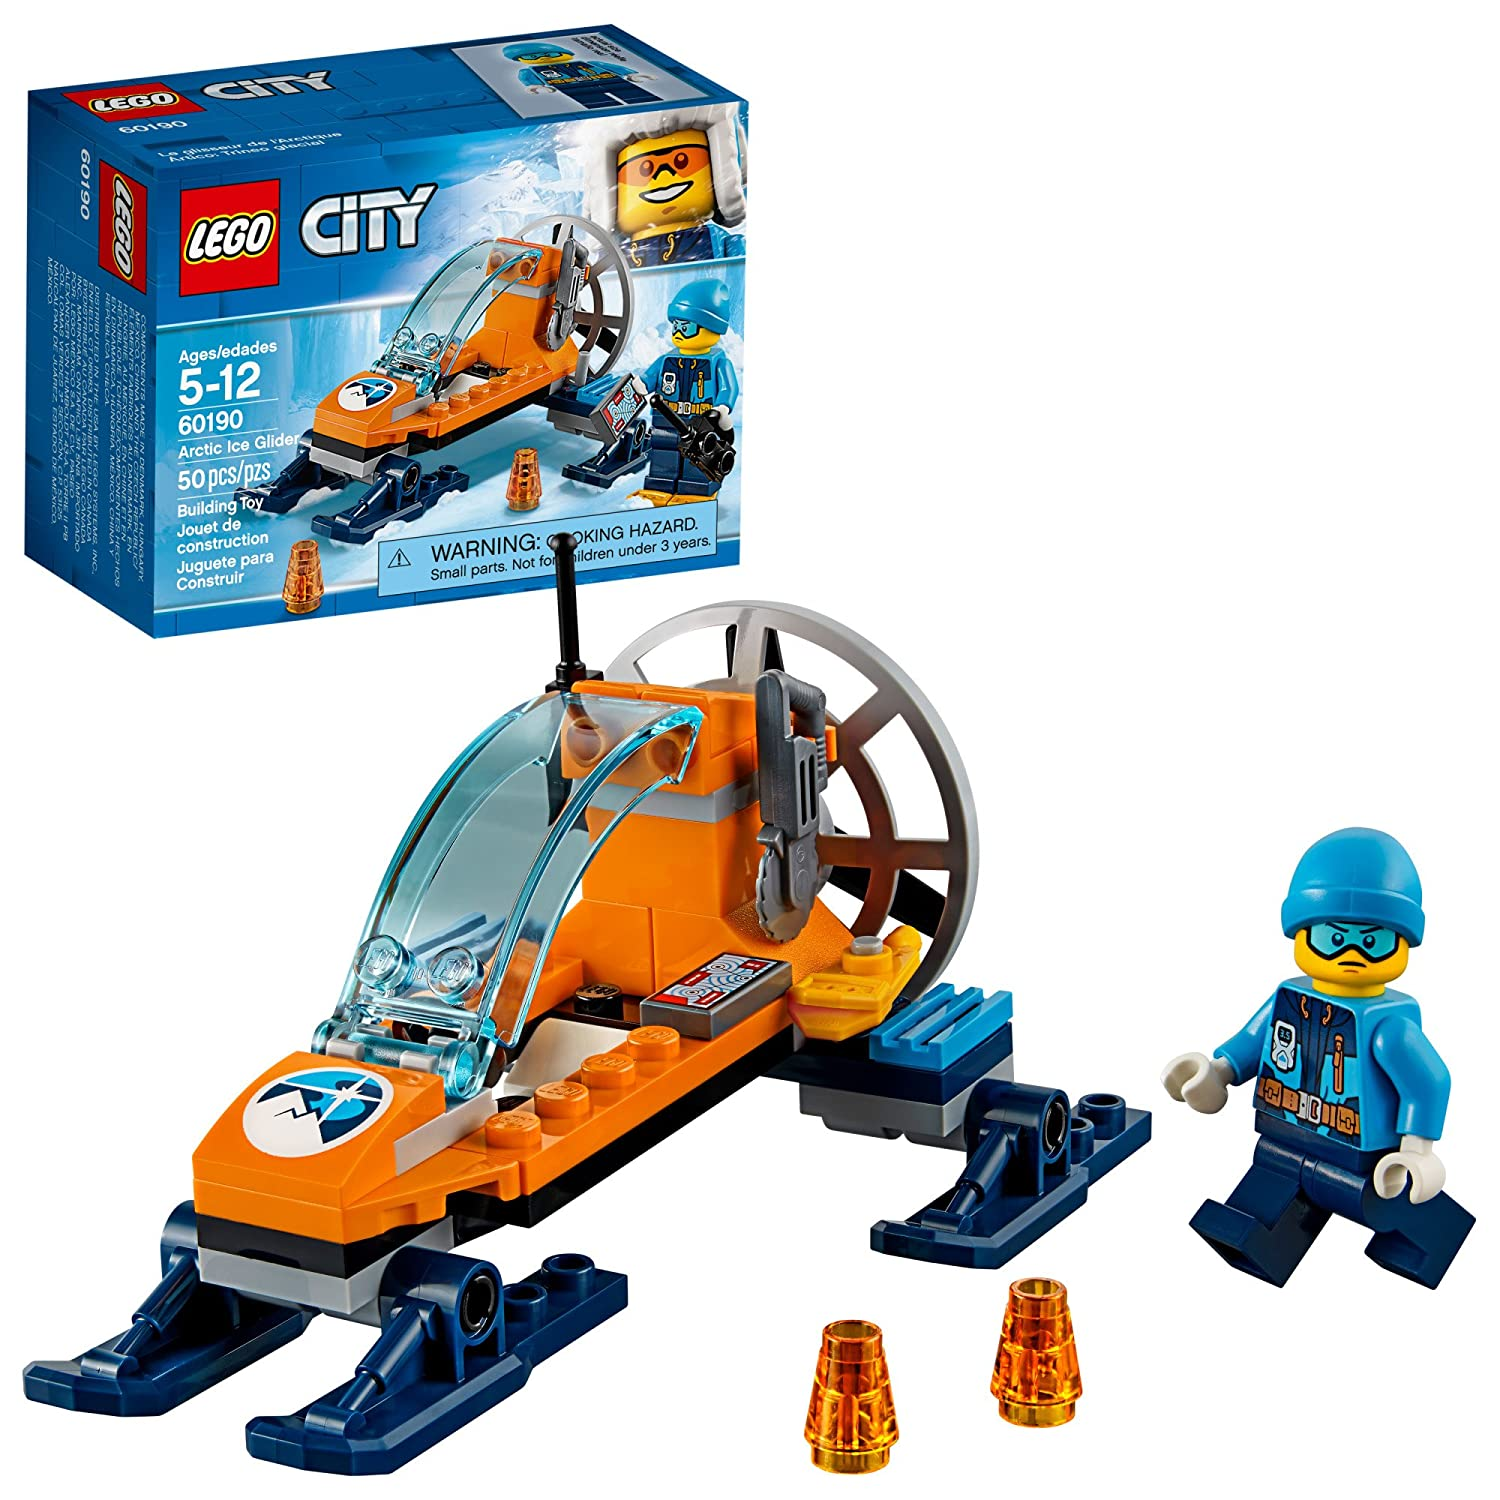 LEGO City Arctic Ice Glider 60190 Building Kit (50 Piece) 6212247